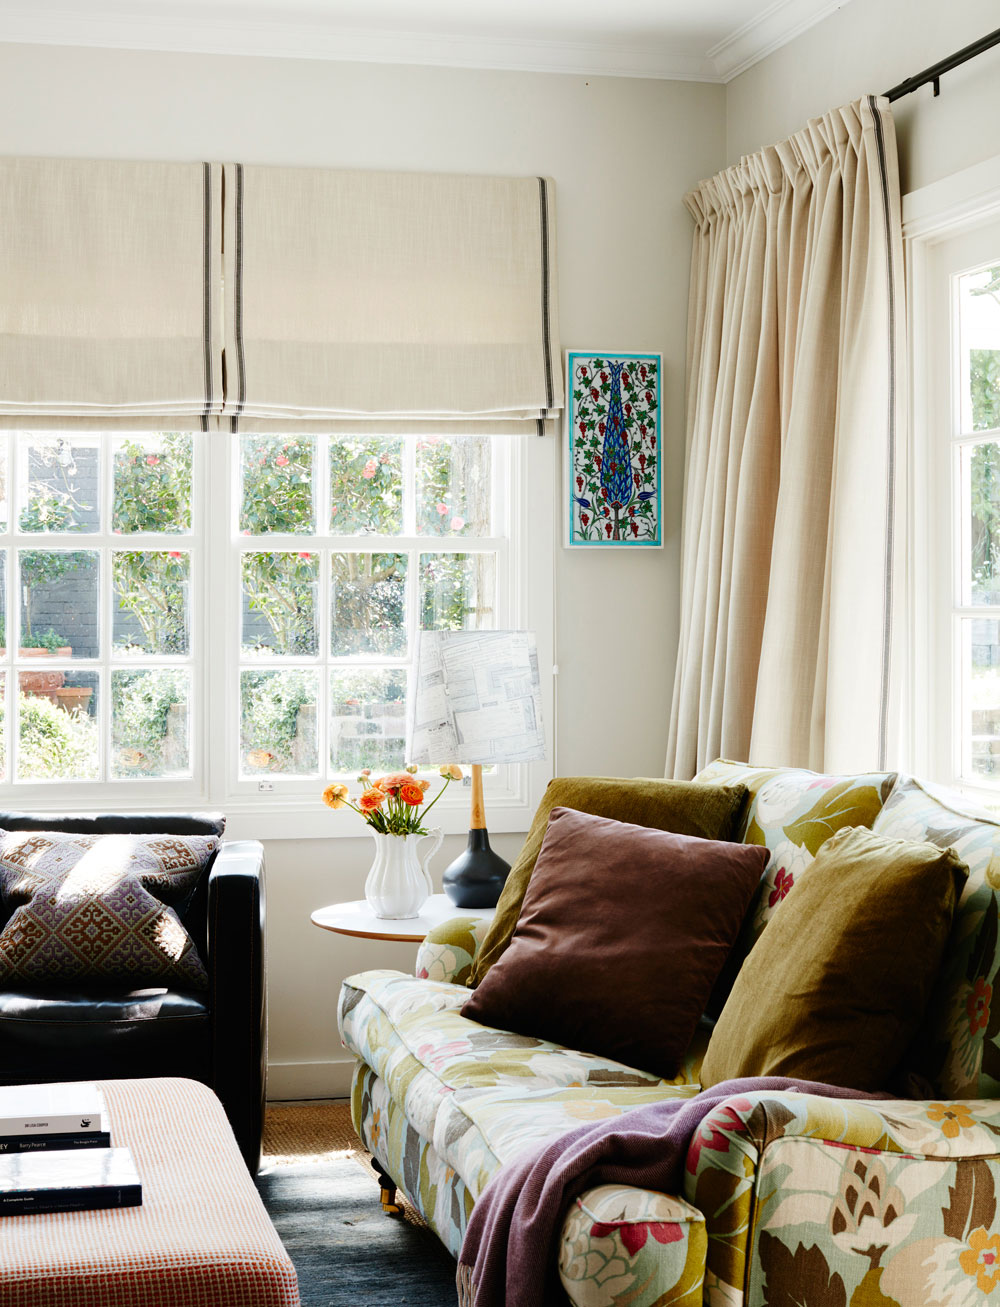 Sheer Curtains Australia Should I Get Curtains Or Blinds No Chintz Interior Decorating